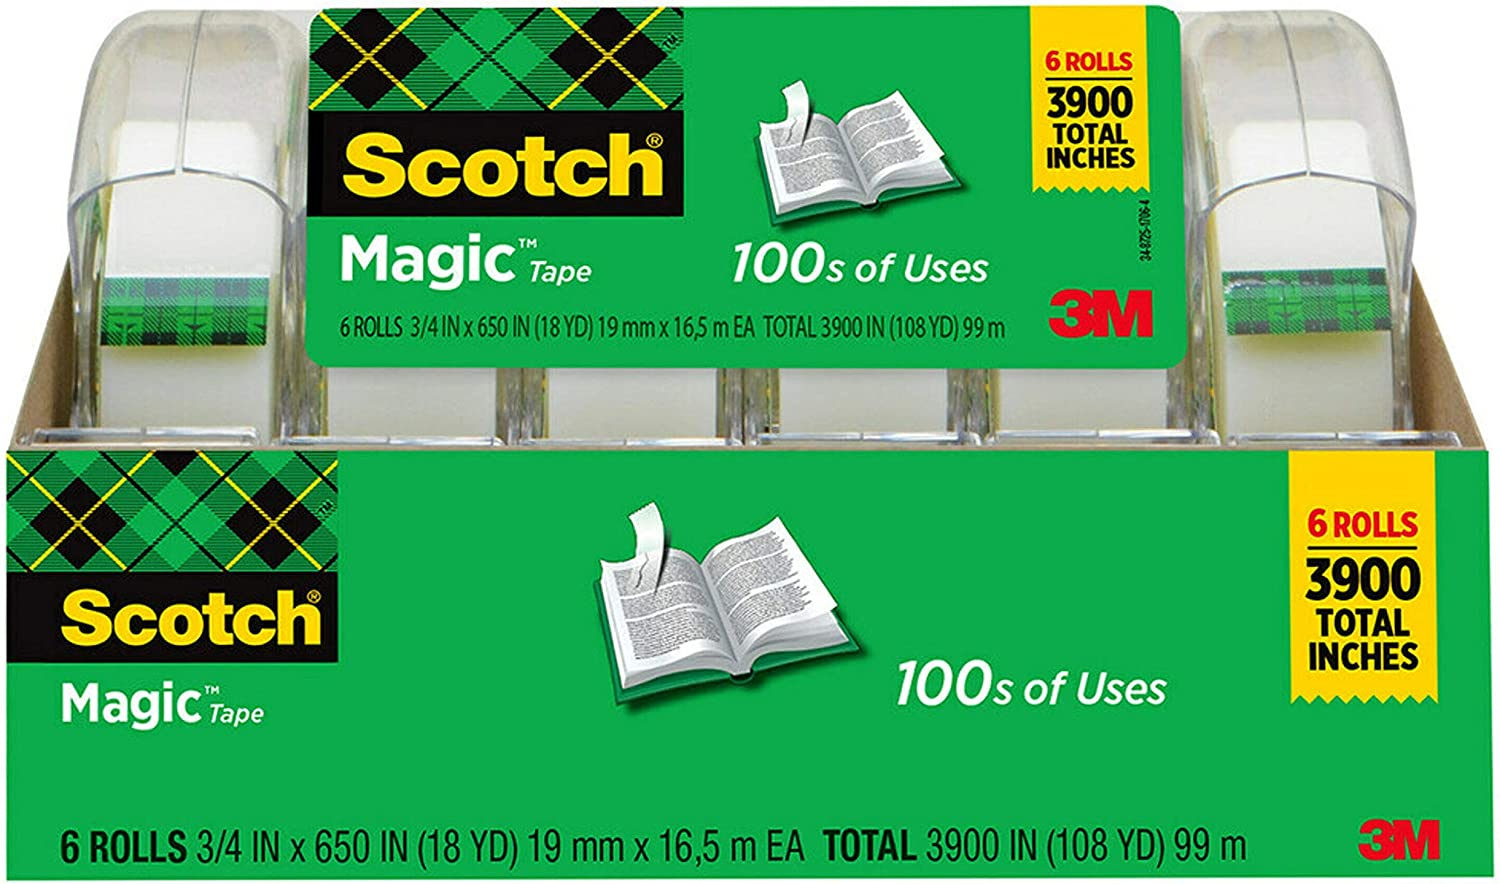 Scotch Magic Tape, 6 Rolls, Numerous Applications, Invisible, Engineered for Repairing, 3/4 x 650 Inches, Boxed (6122) : Office Products